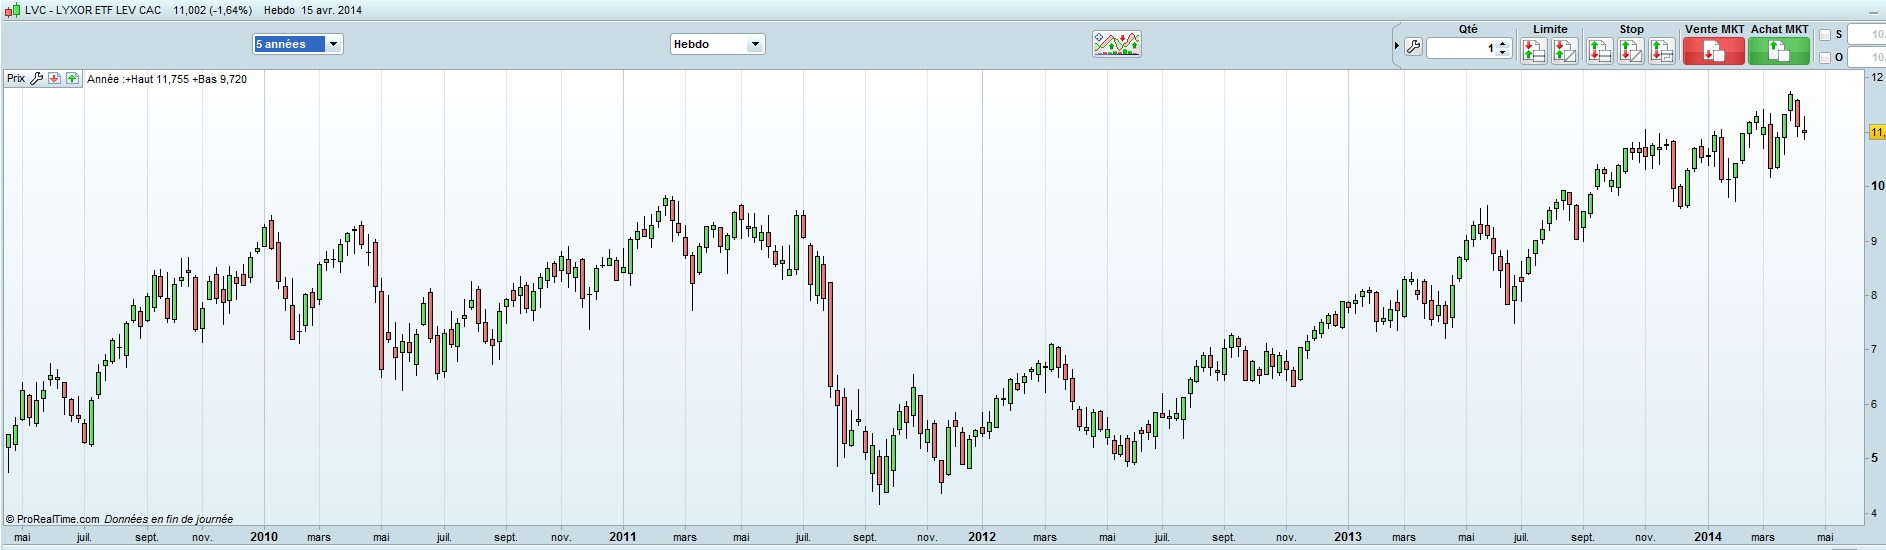 cac40_lvc_weekly 5 ans 15 avril 2014